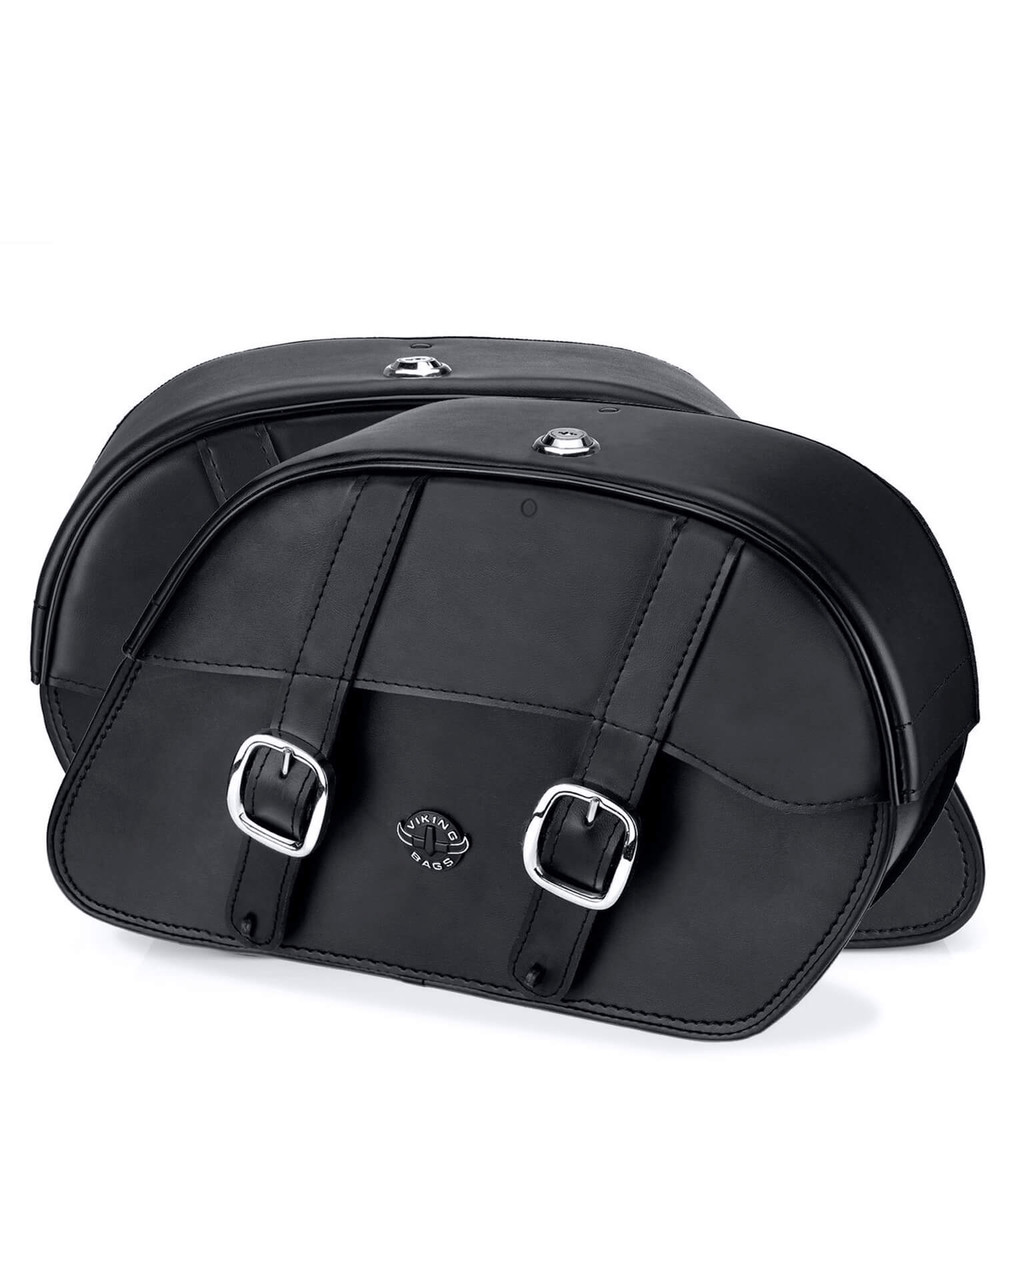 Viking Shock Cutout Slanted Large Motorcycle Saddlebags For Harley Dyna Low Rider FXDL Both Bags View